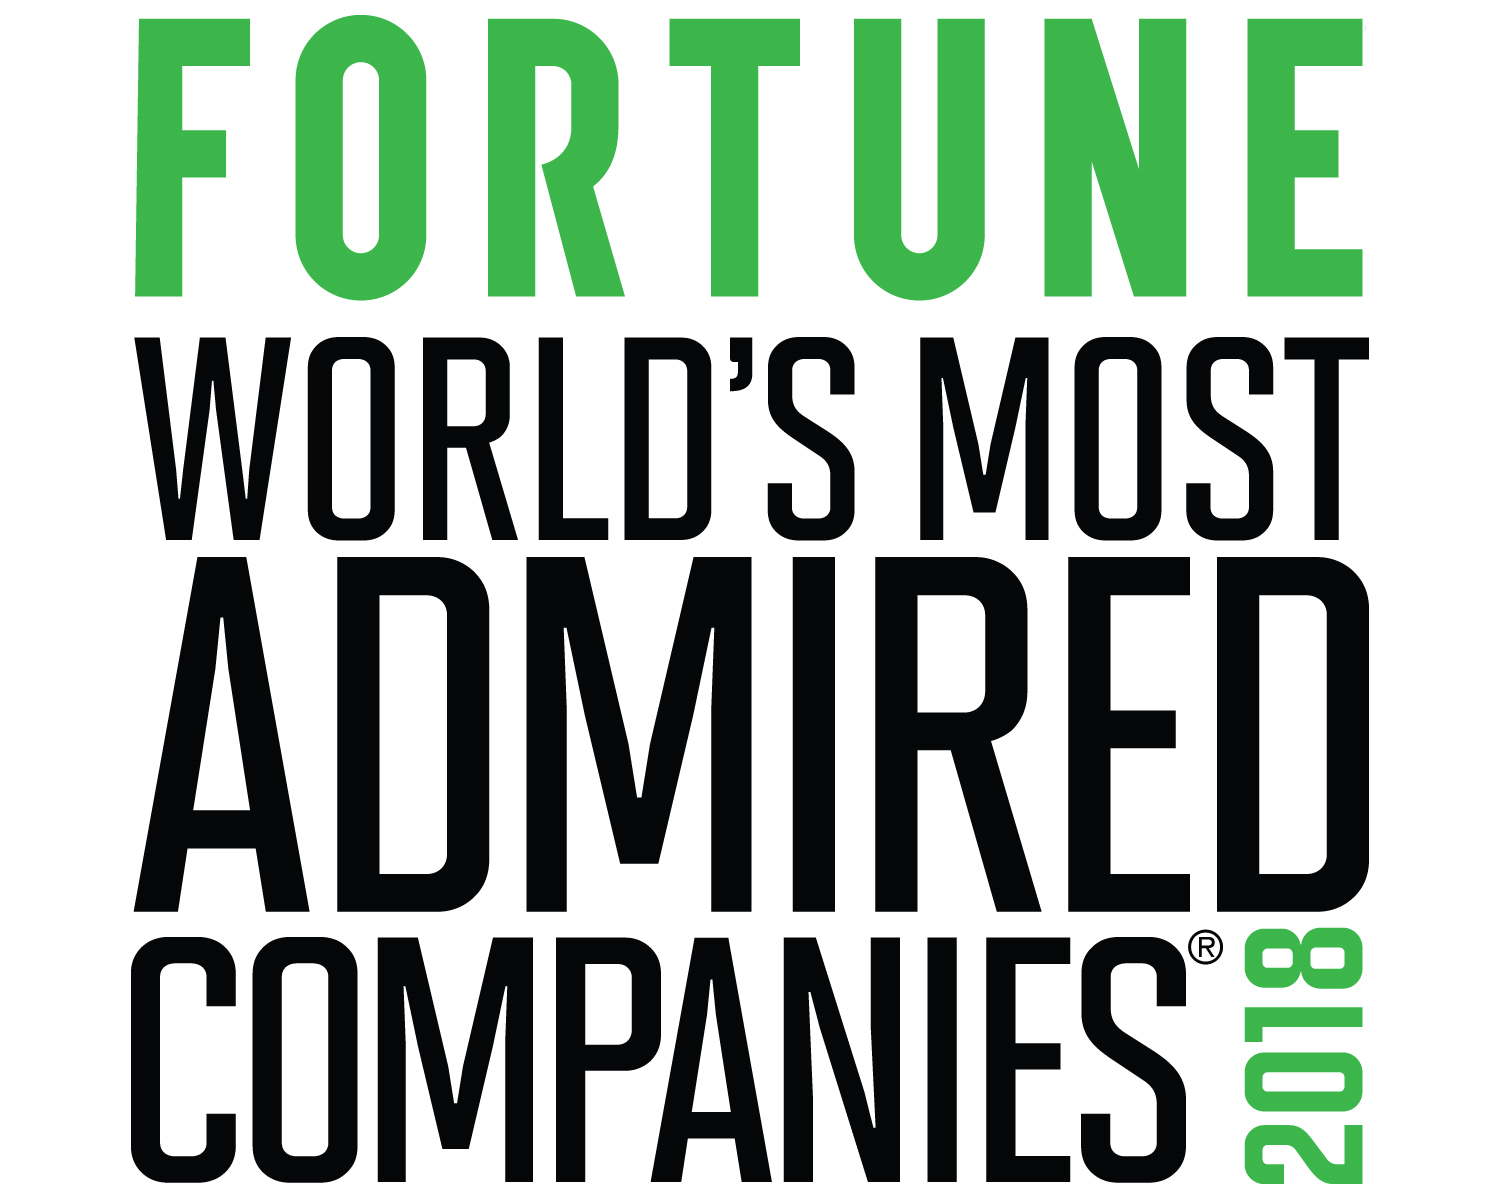 World's Most Admired Companies 2016 logo